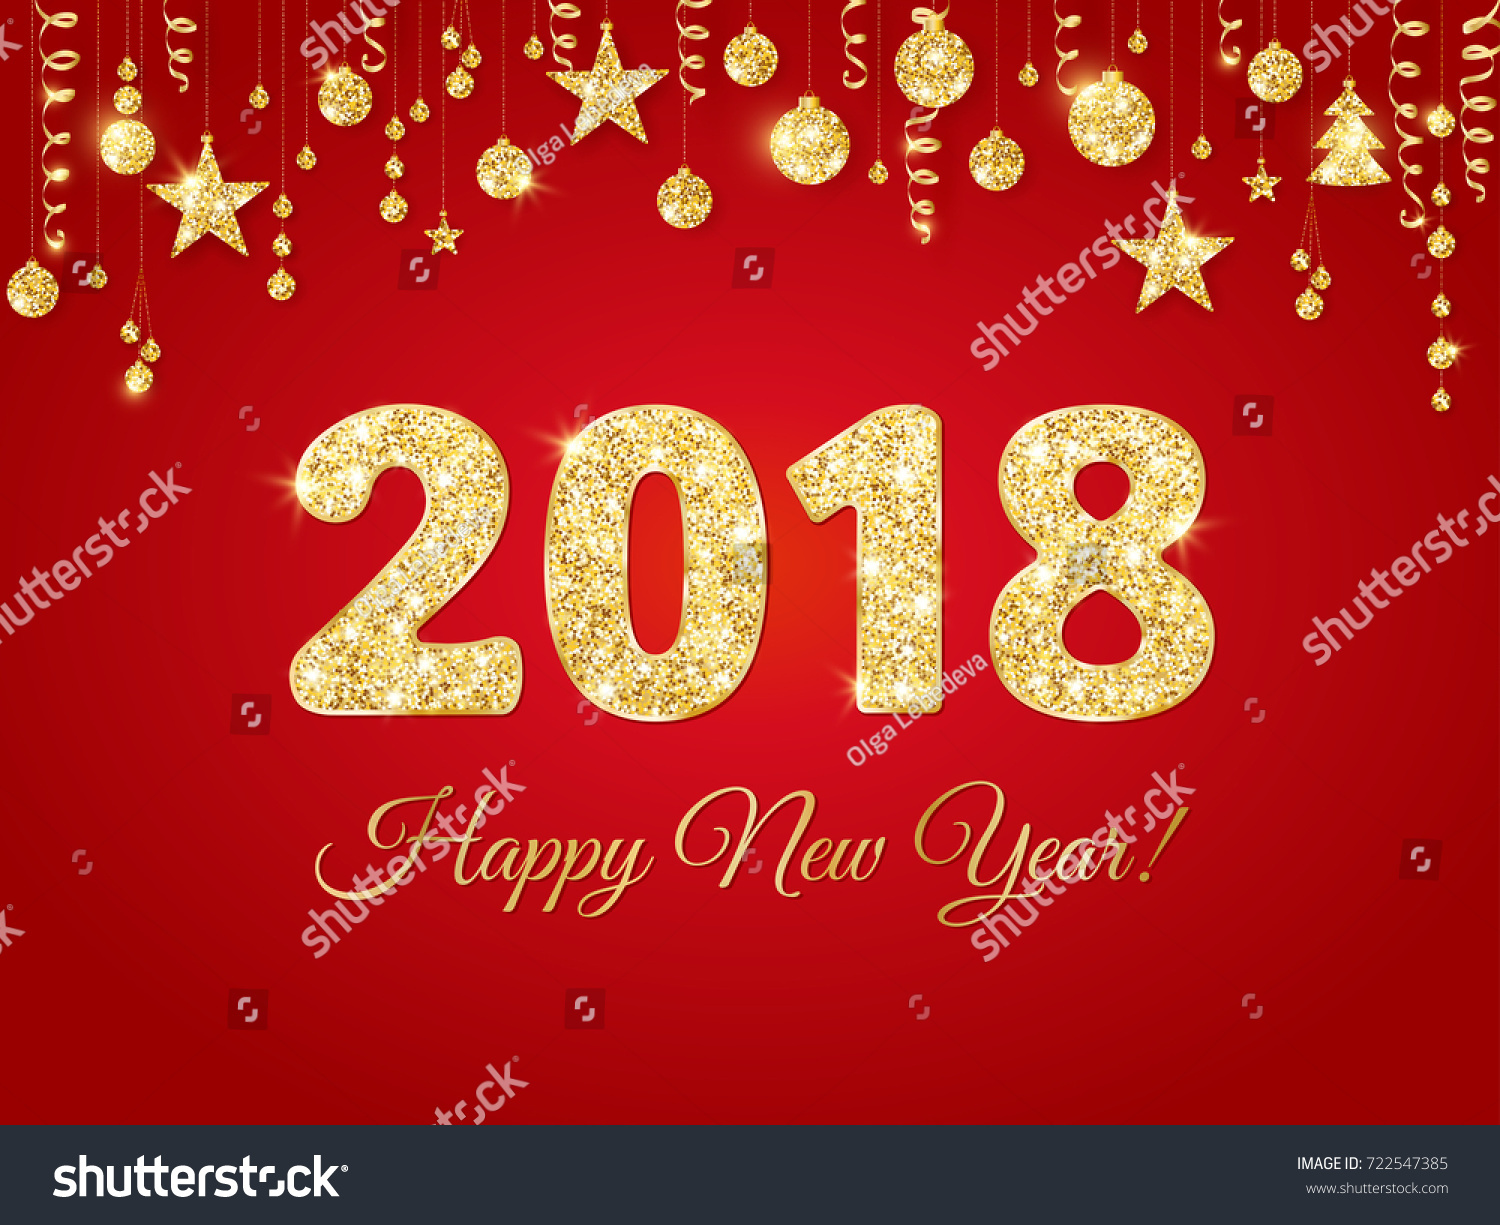 2018 happy new year text with party poppers flags on golden yellow background colorful celebration banner poster wallpaper concept design